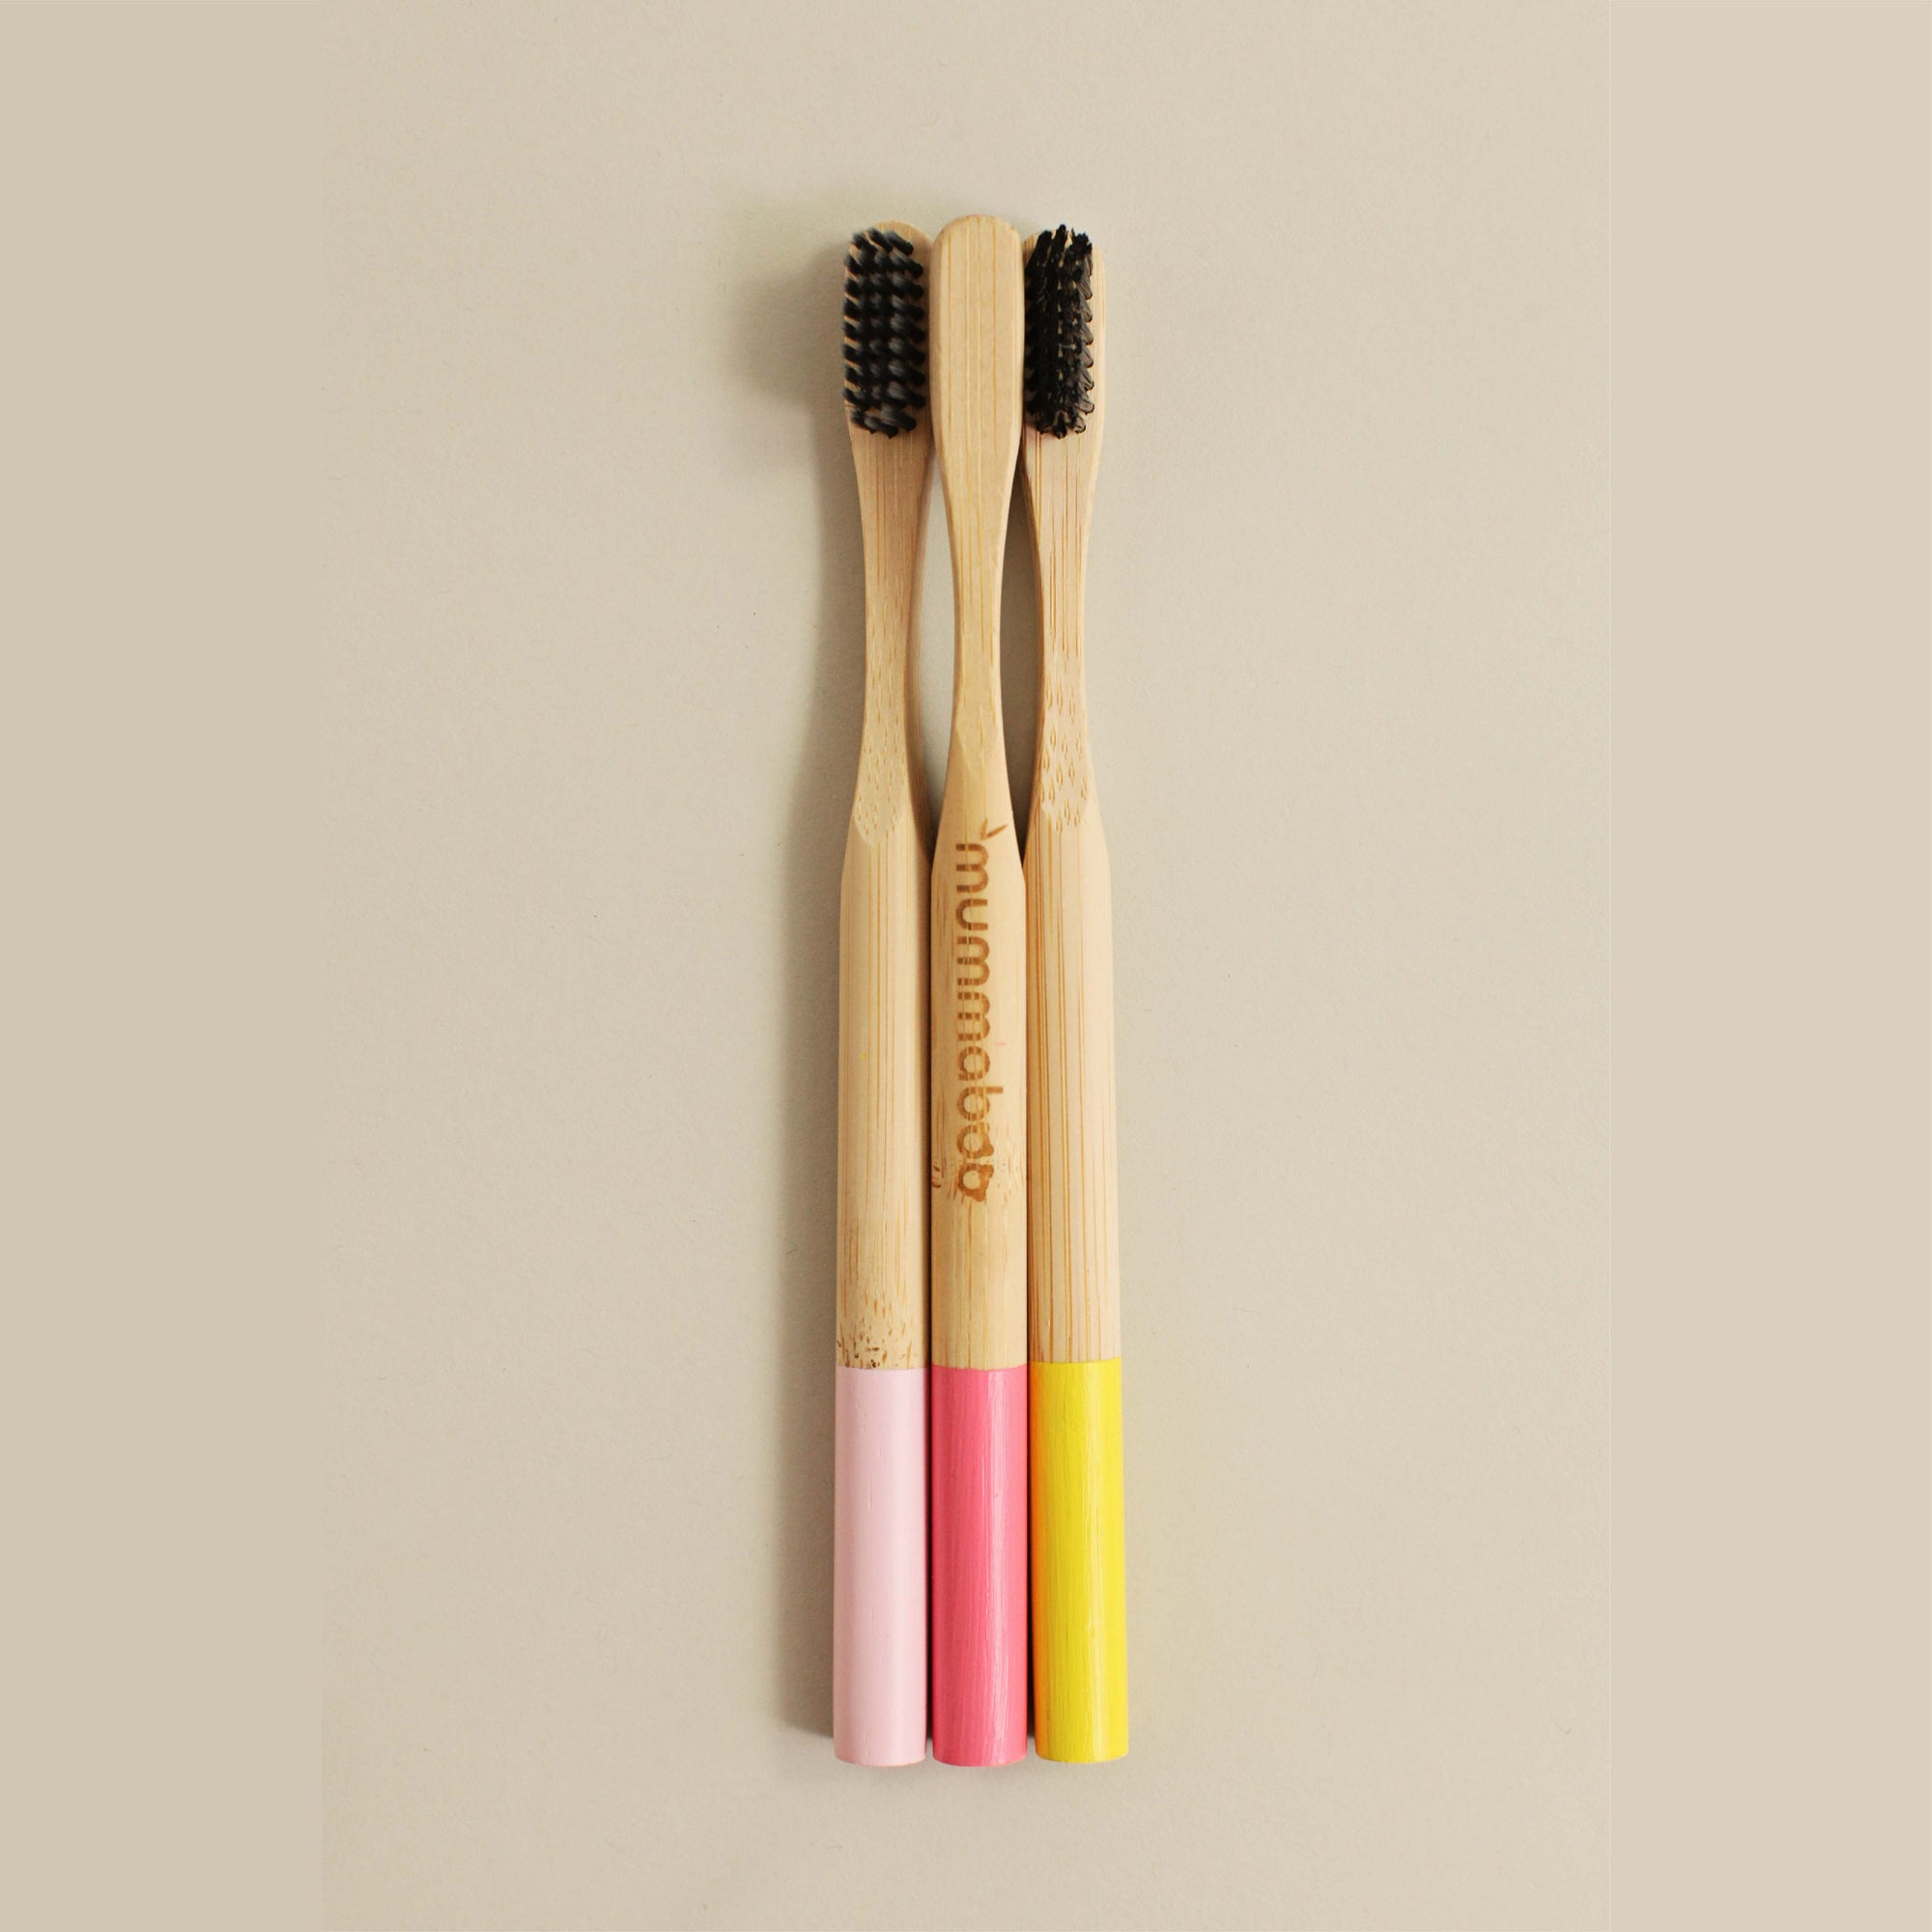 Mummaboo bamboo toothbrush with charcoal bristles